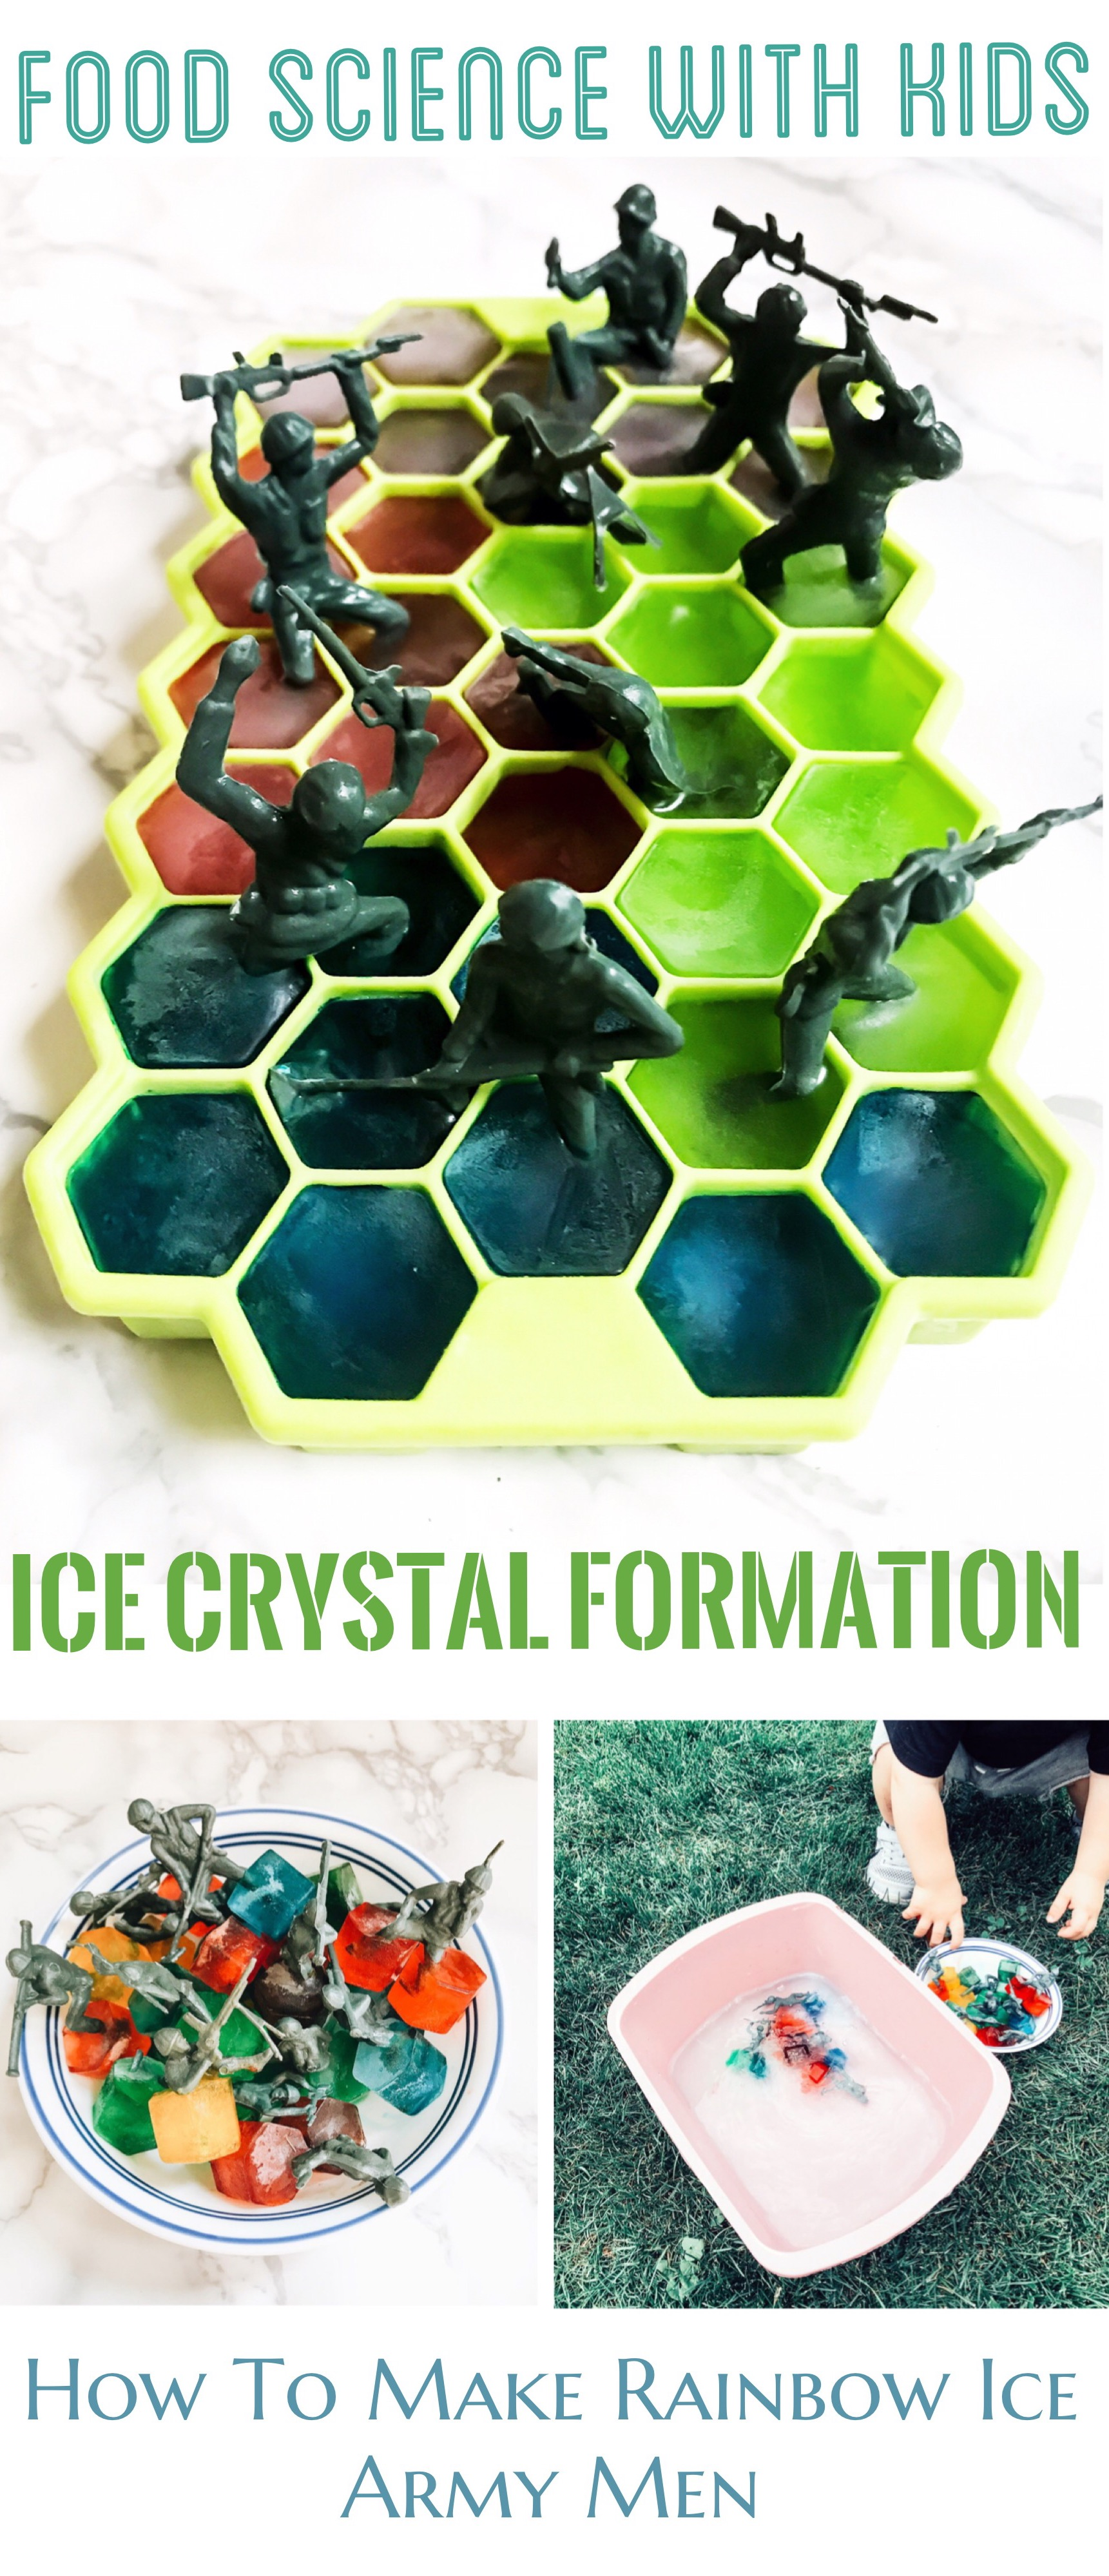 Food Science Experiments For Kids - Rainbow Ice Army Men - How Ice Crystals Are Formed